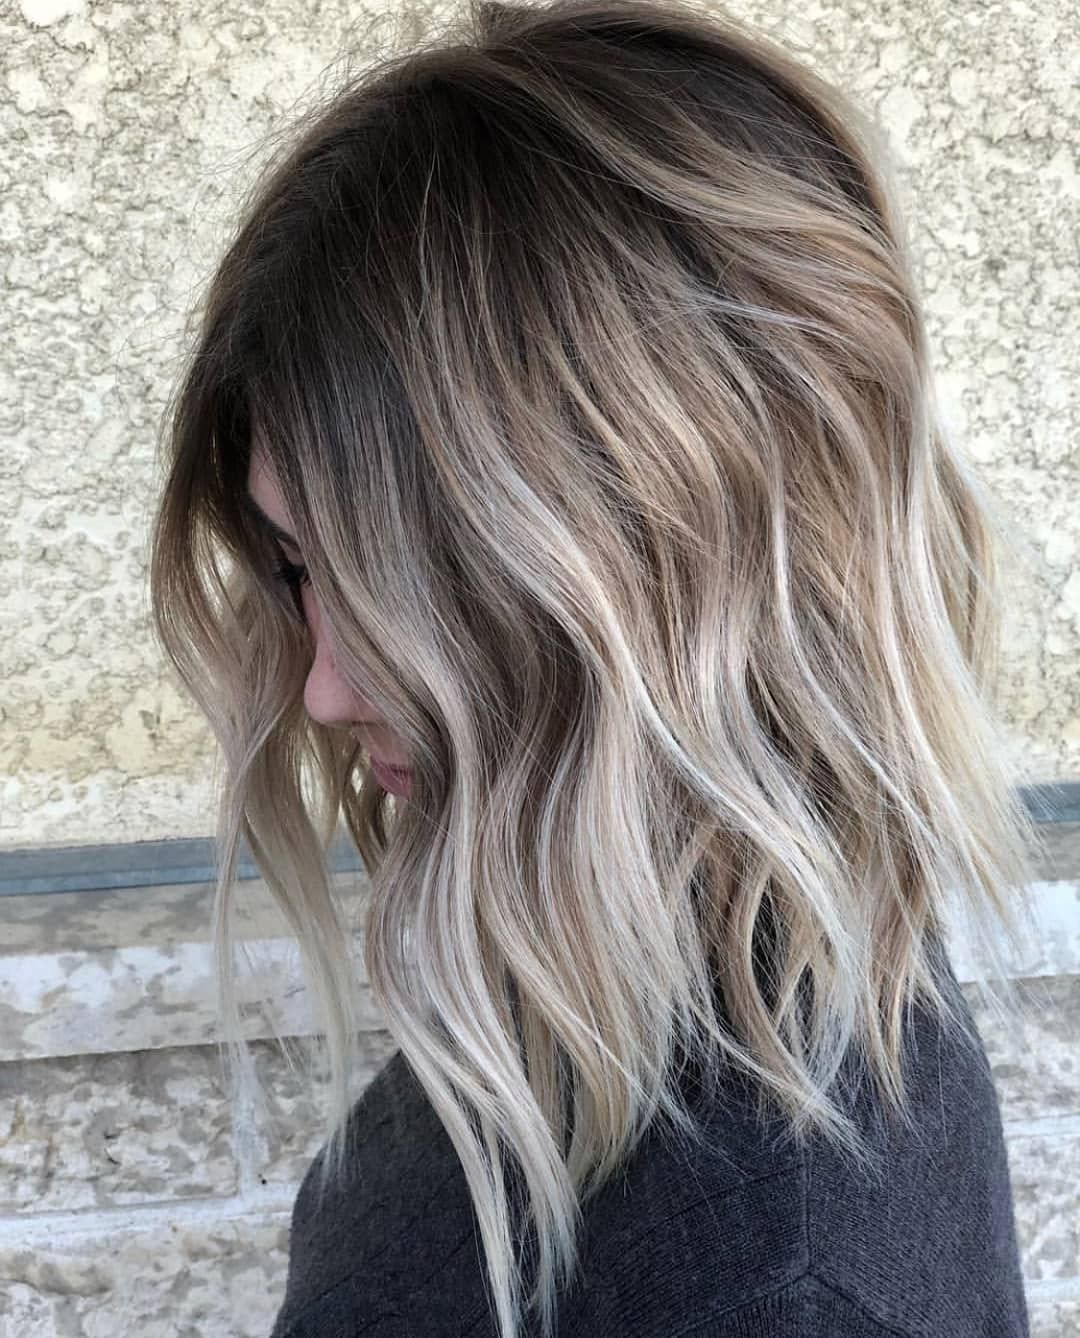 10 Medium to Long Hairstyles in Exciting Blonde Co